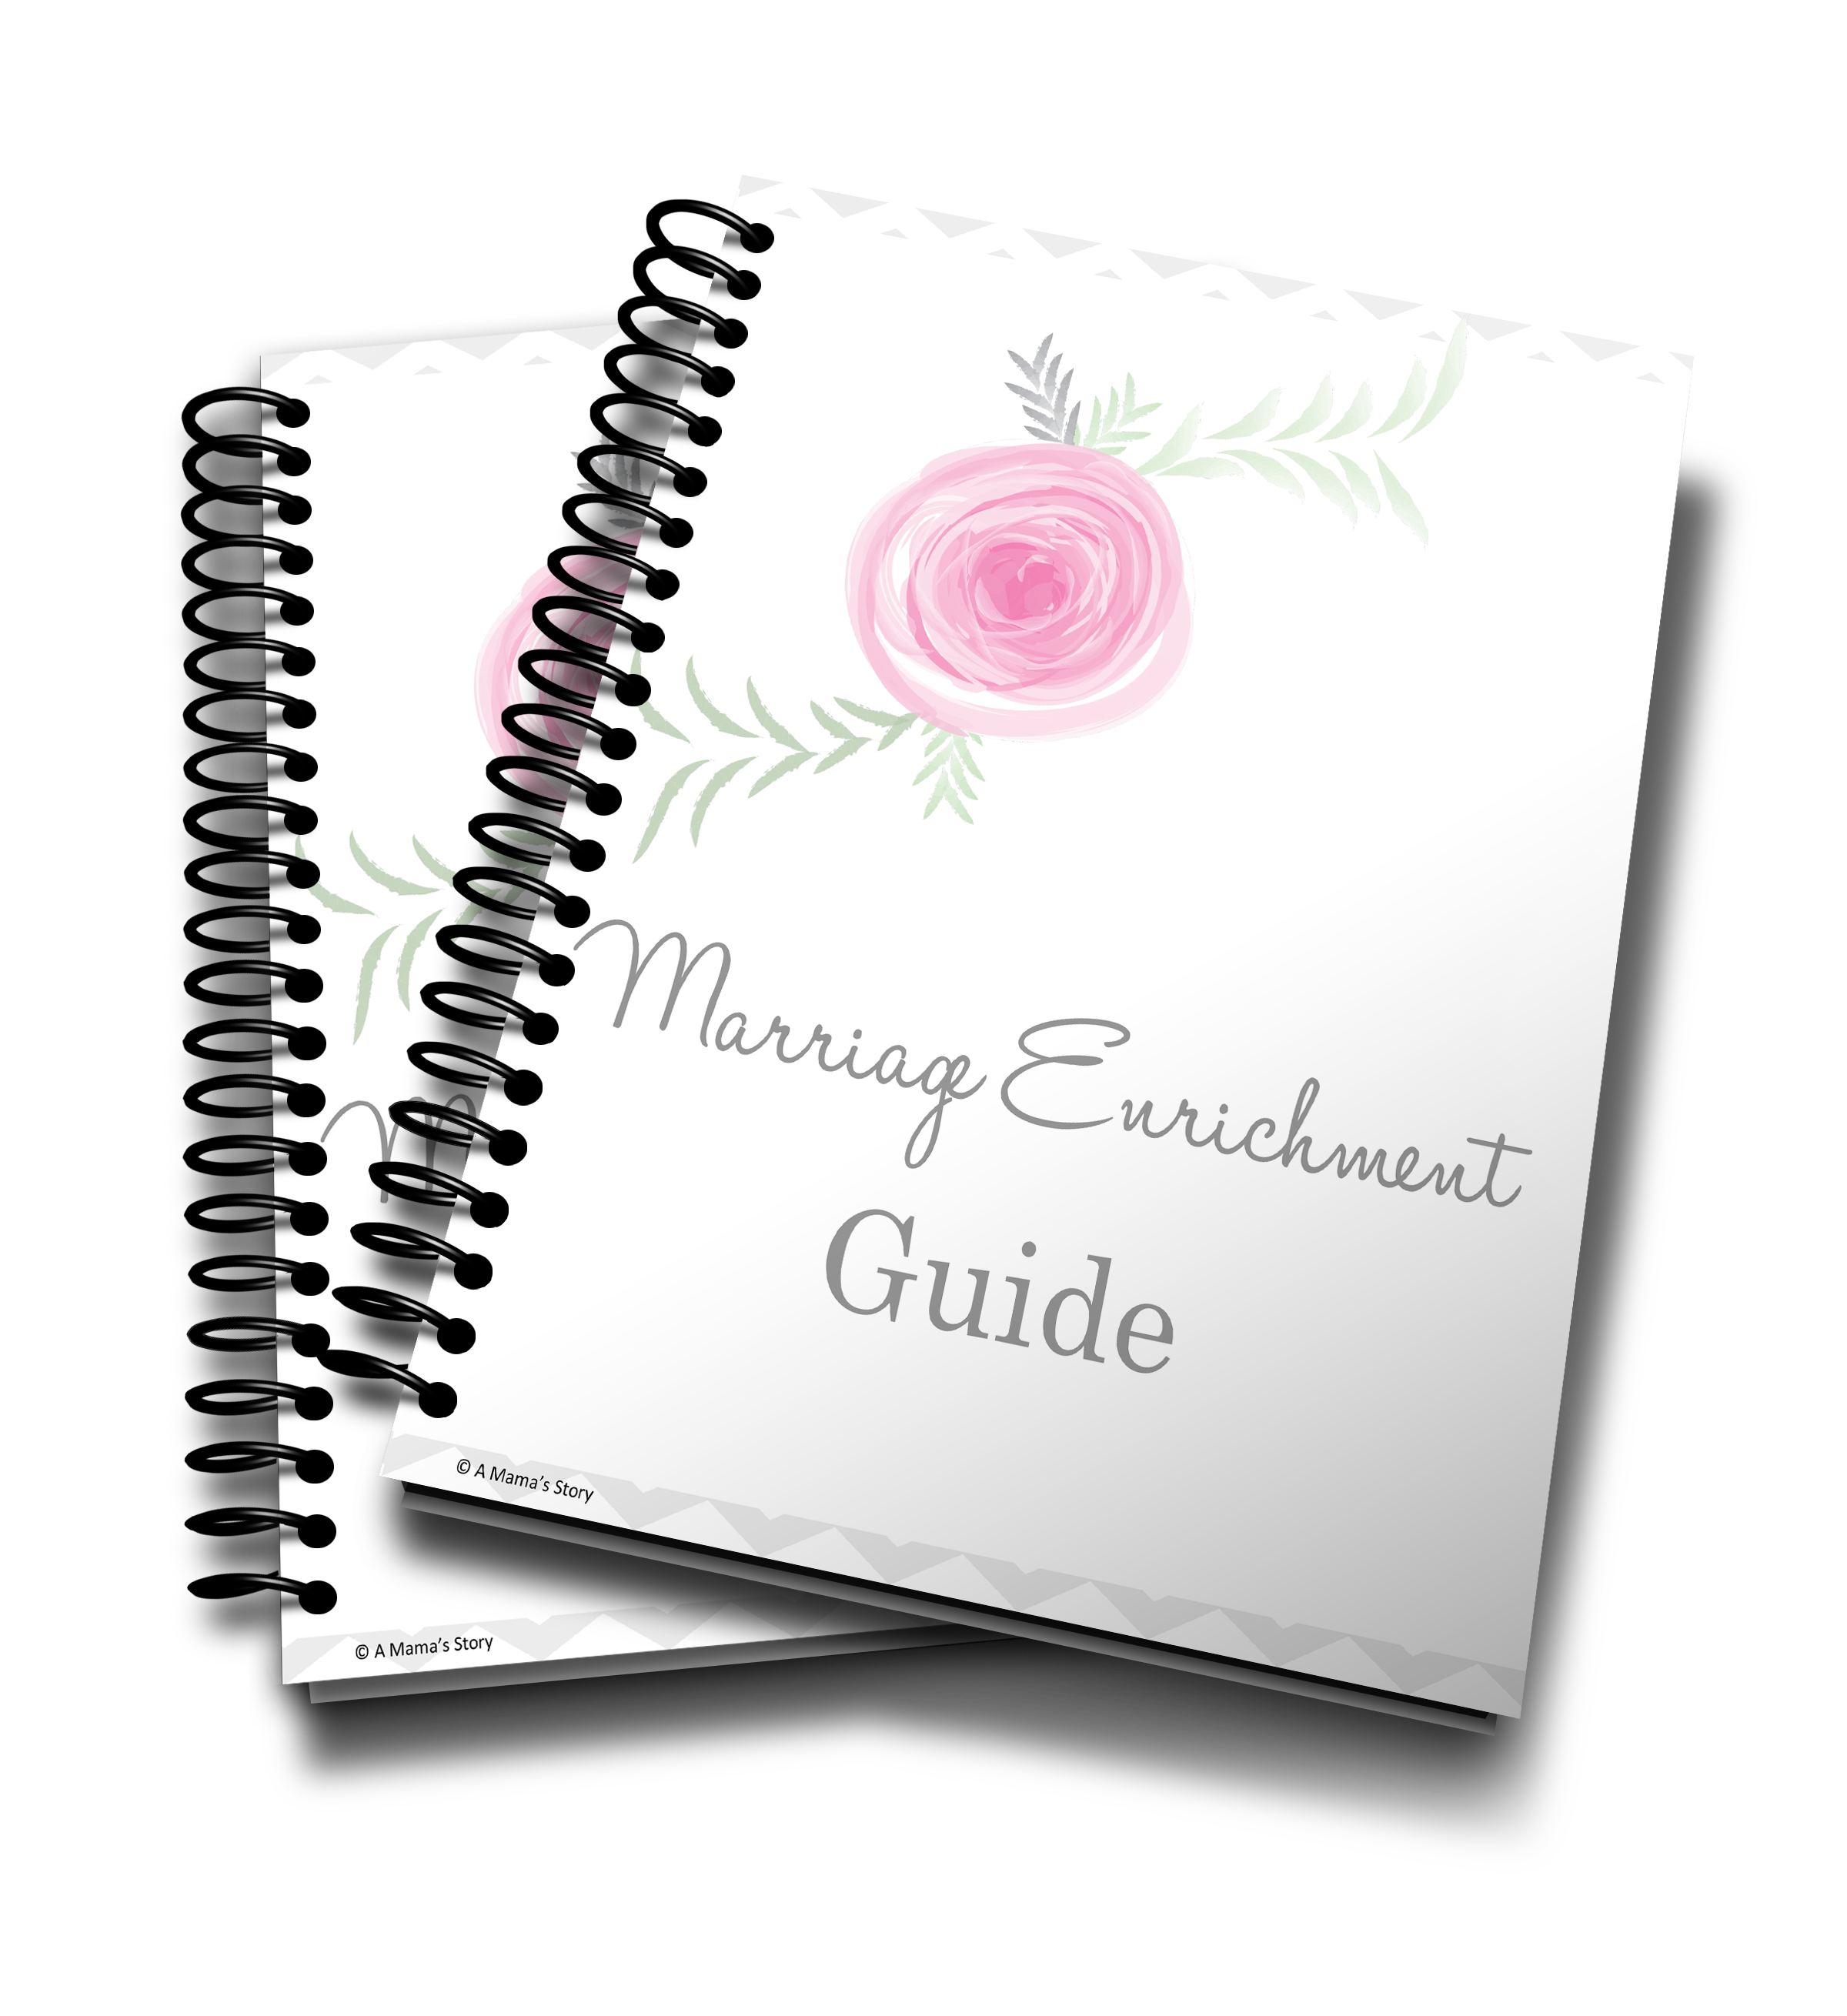 marriage-enrichment-guide-3d-2